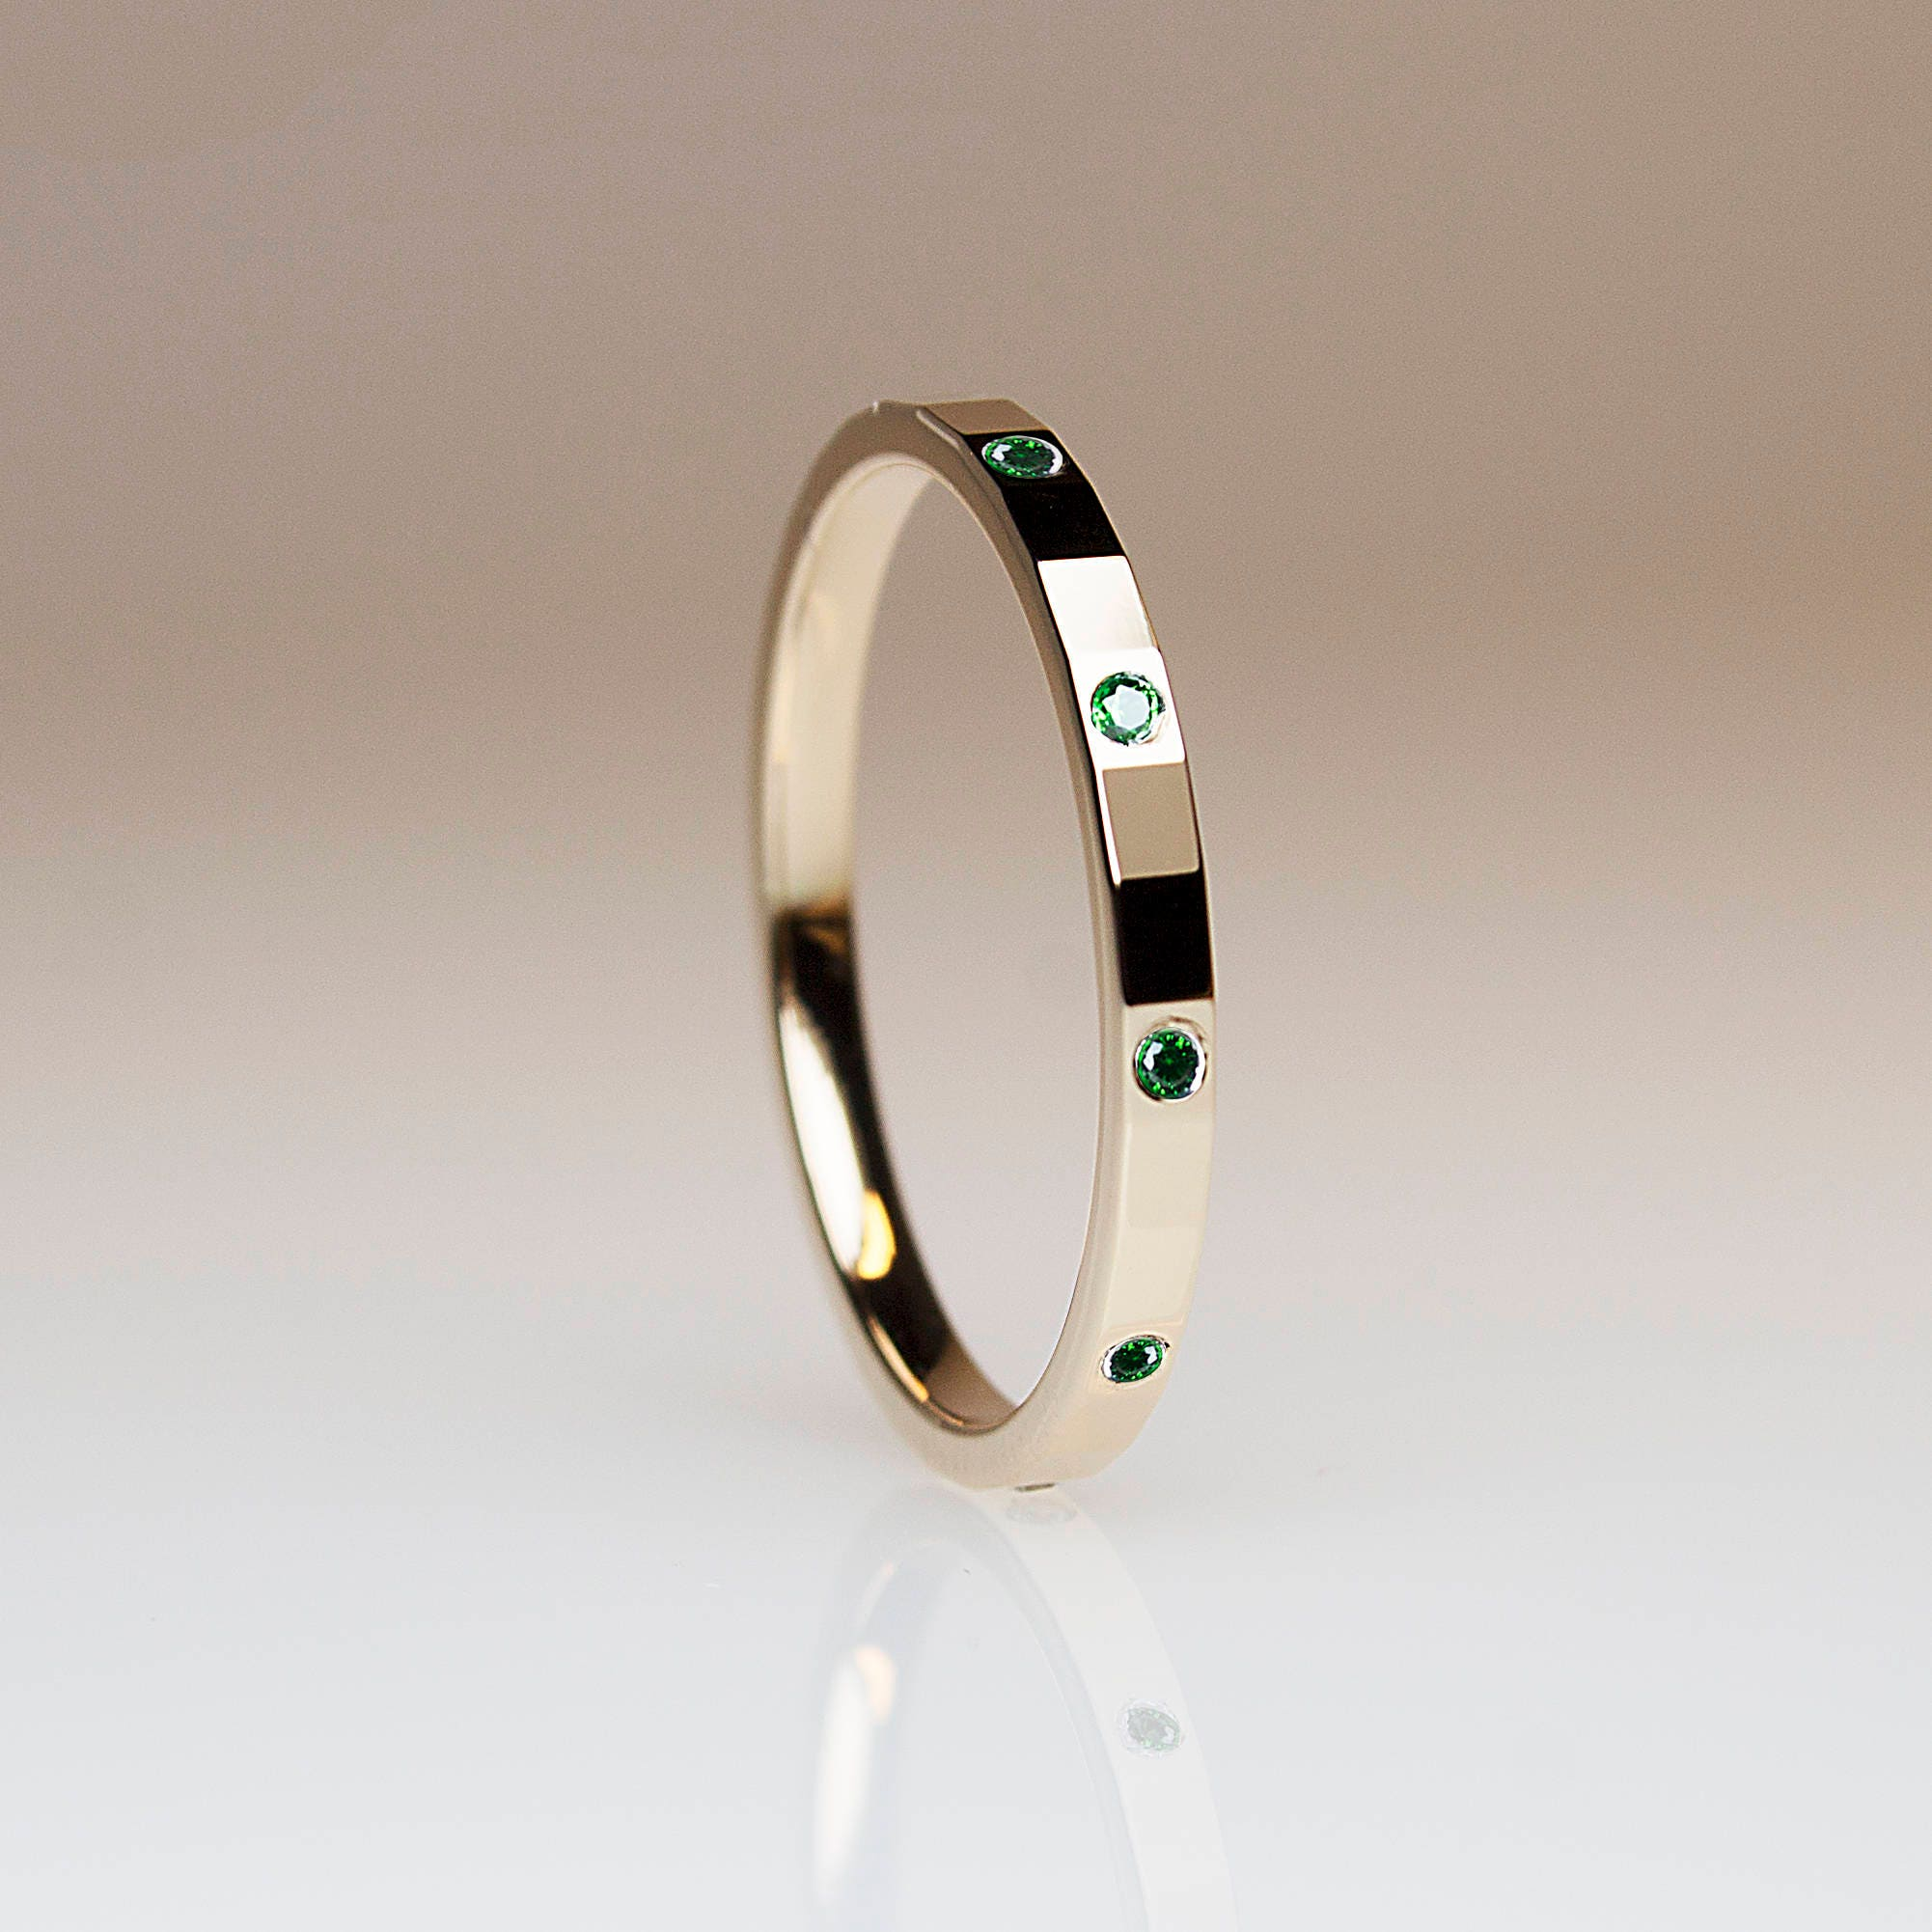 thin gold band gucci rings nyshowplace icon img ring